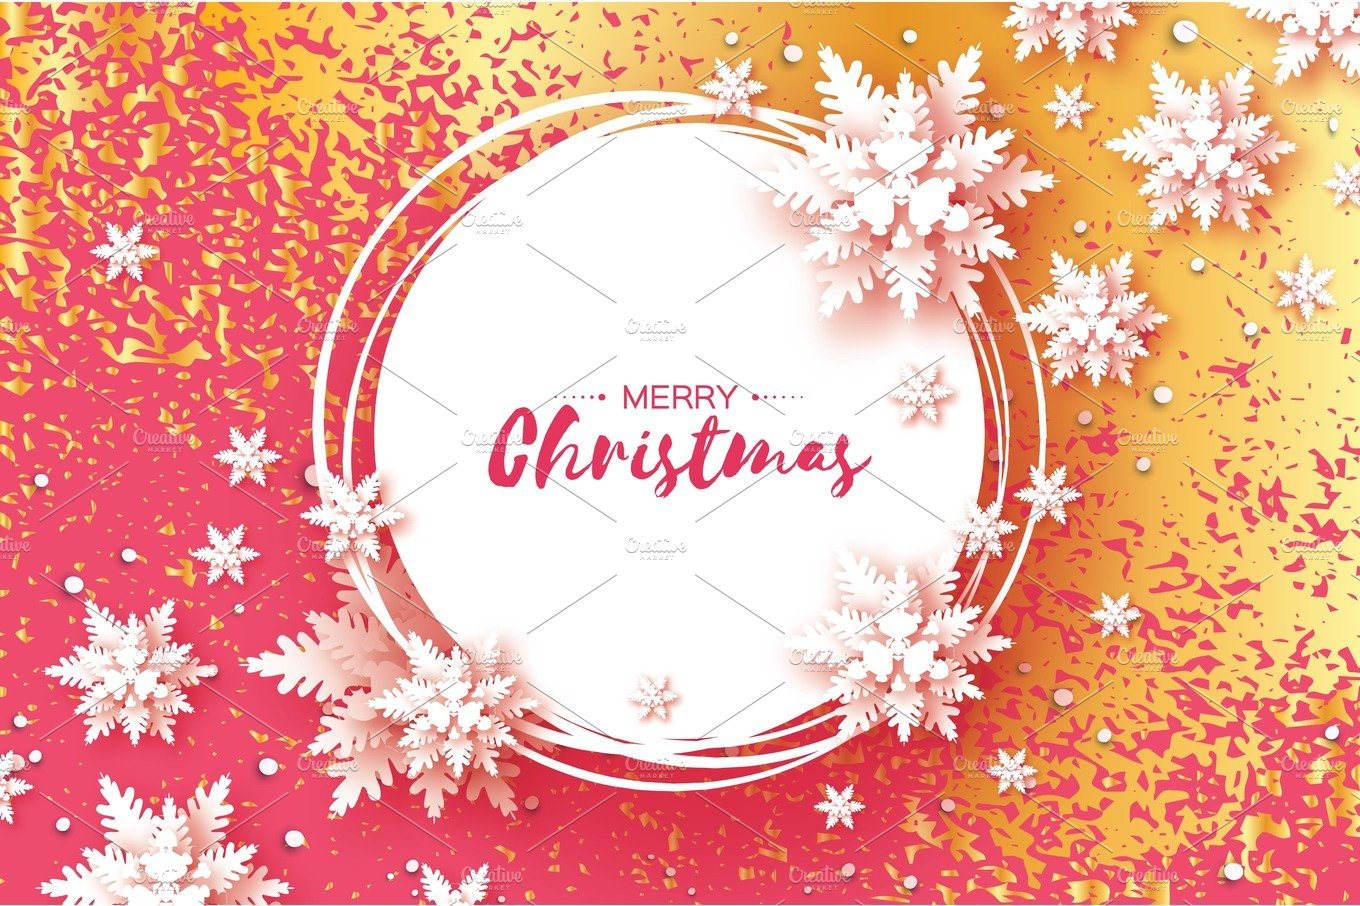 Origami snowfall merry christmas greetings card white paper cut origami christmas greetings card paper cut snow flake happy new year winter snowflakes kristyandbryce Image collections